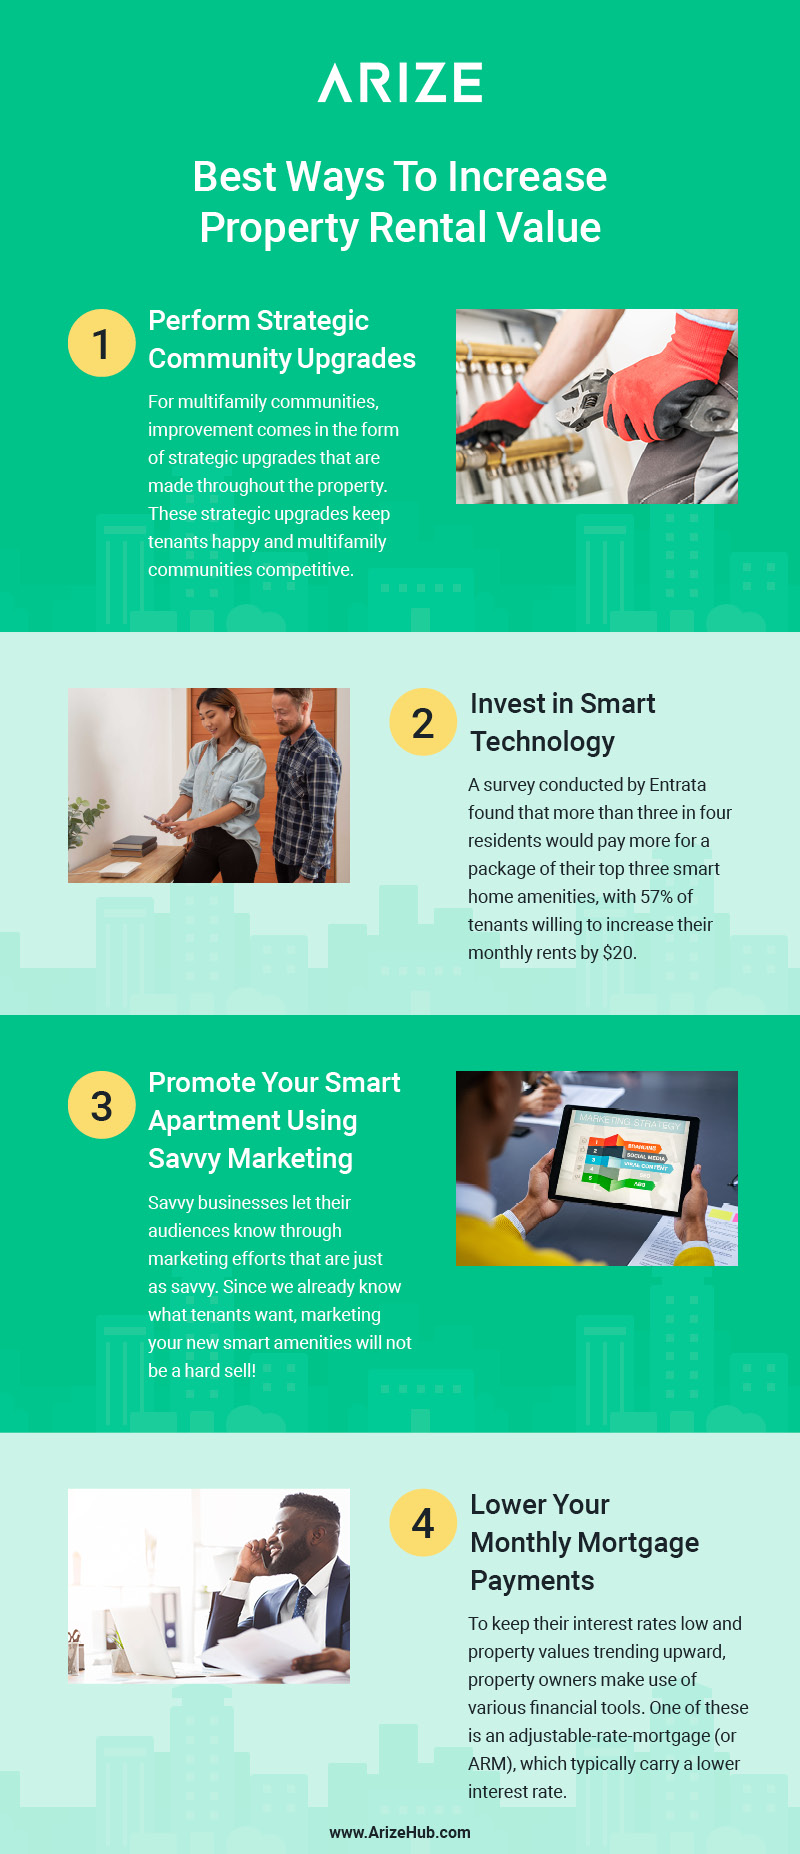 Best ways to increase property rental value for multifamily infographic